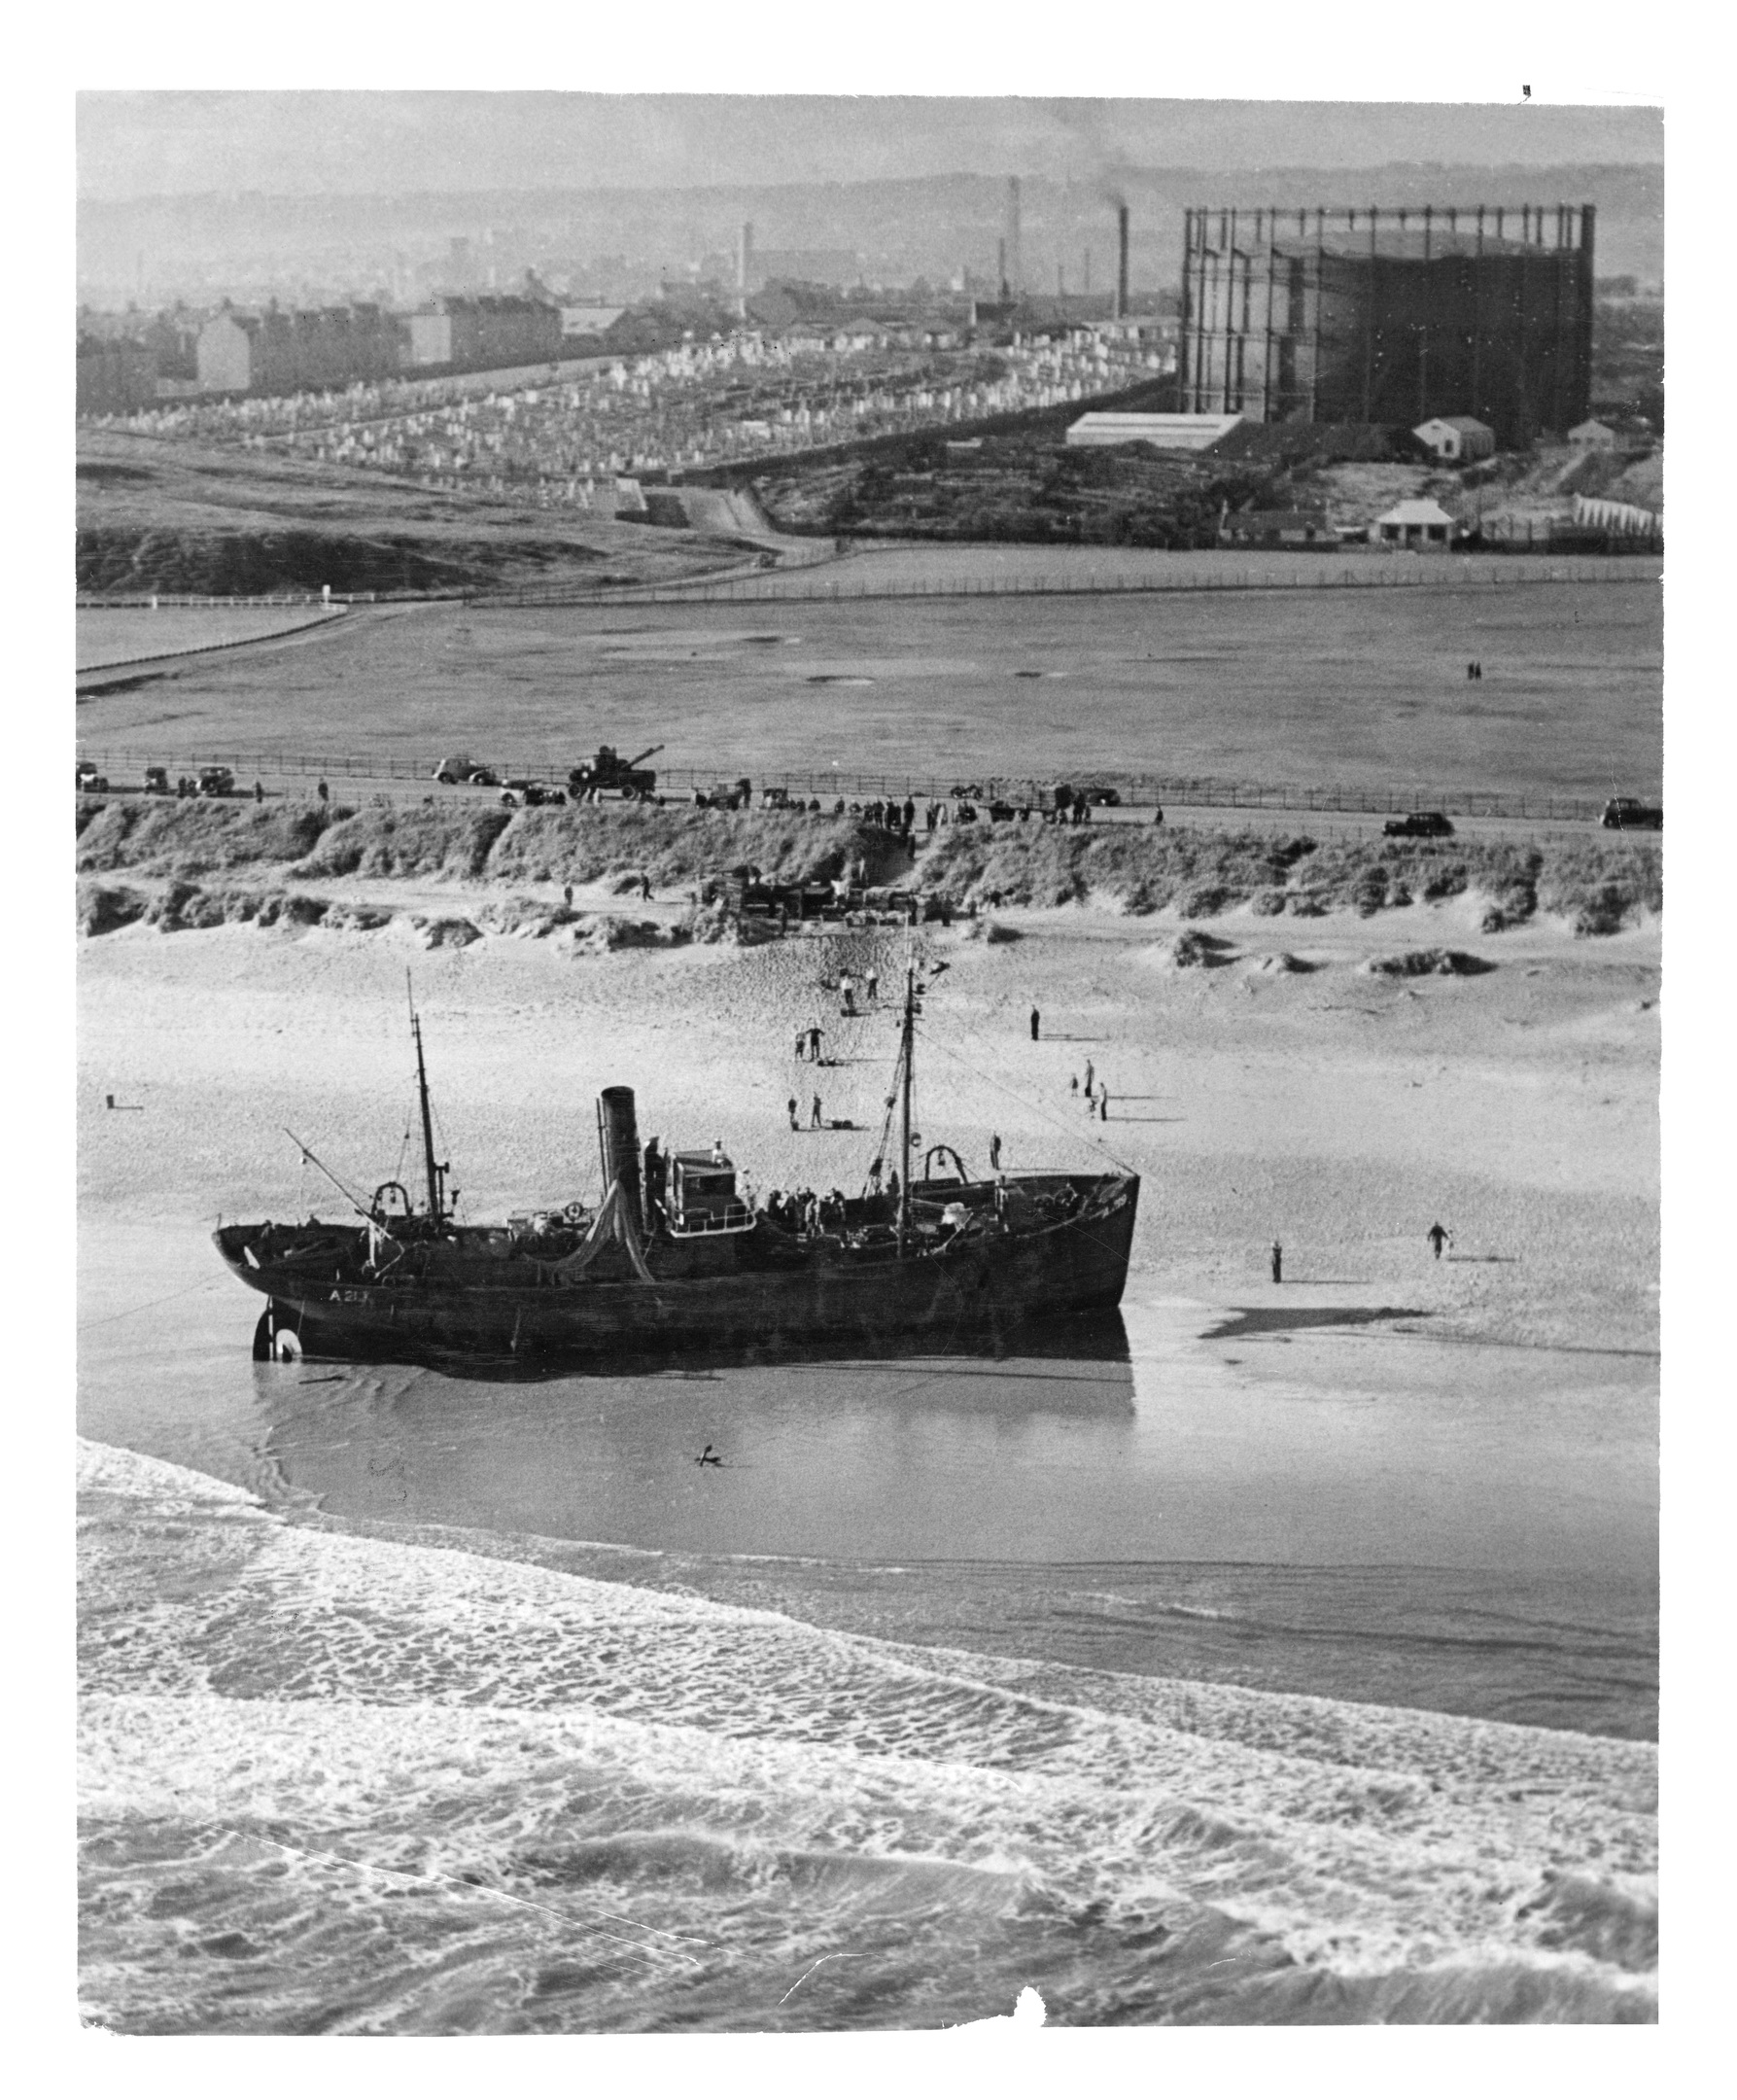 The crew of the Aberdeen trawler Sturdee, retrieving their catch from the beached boat.